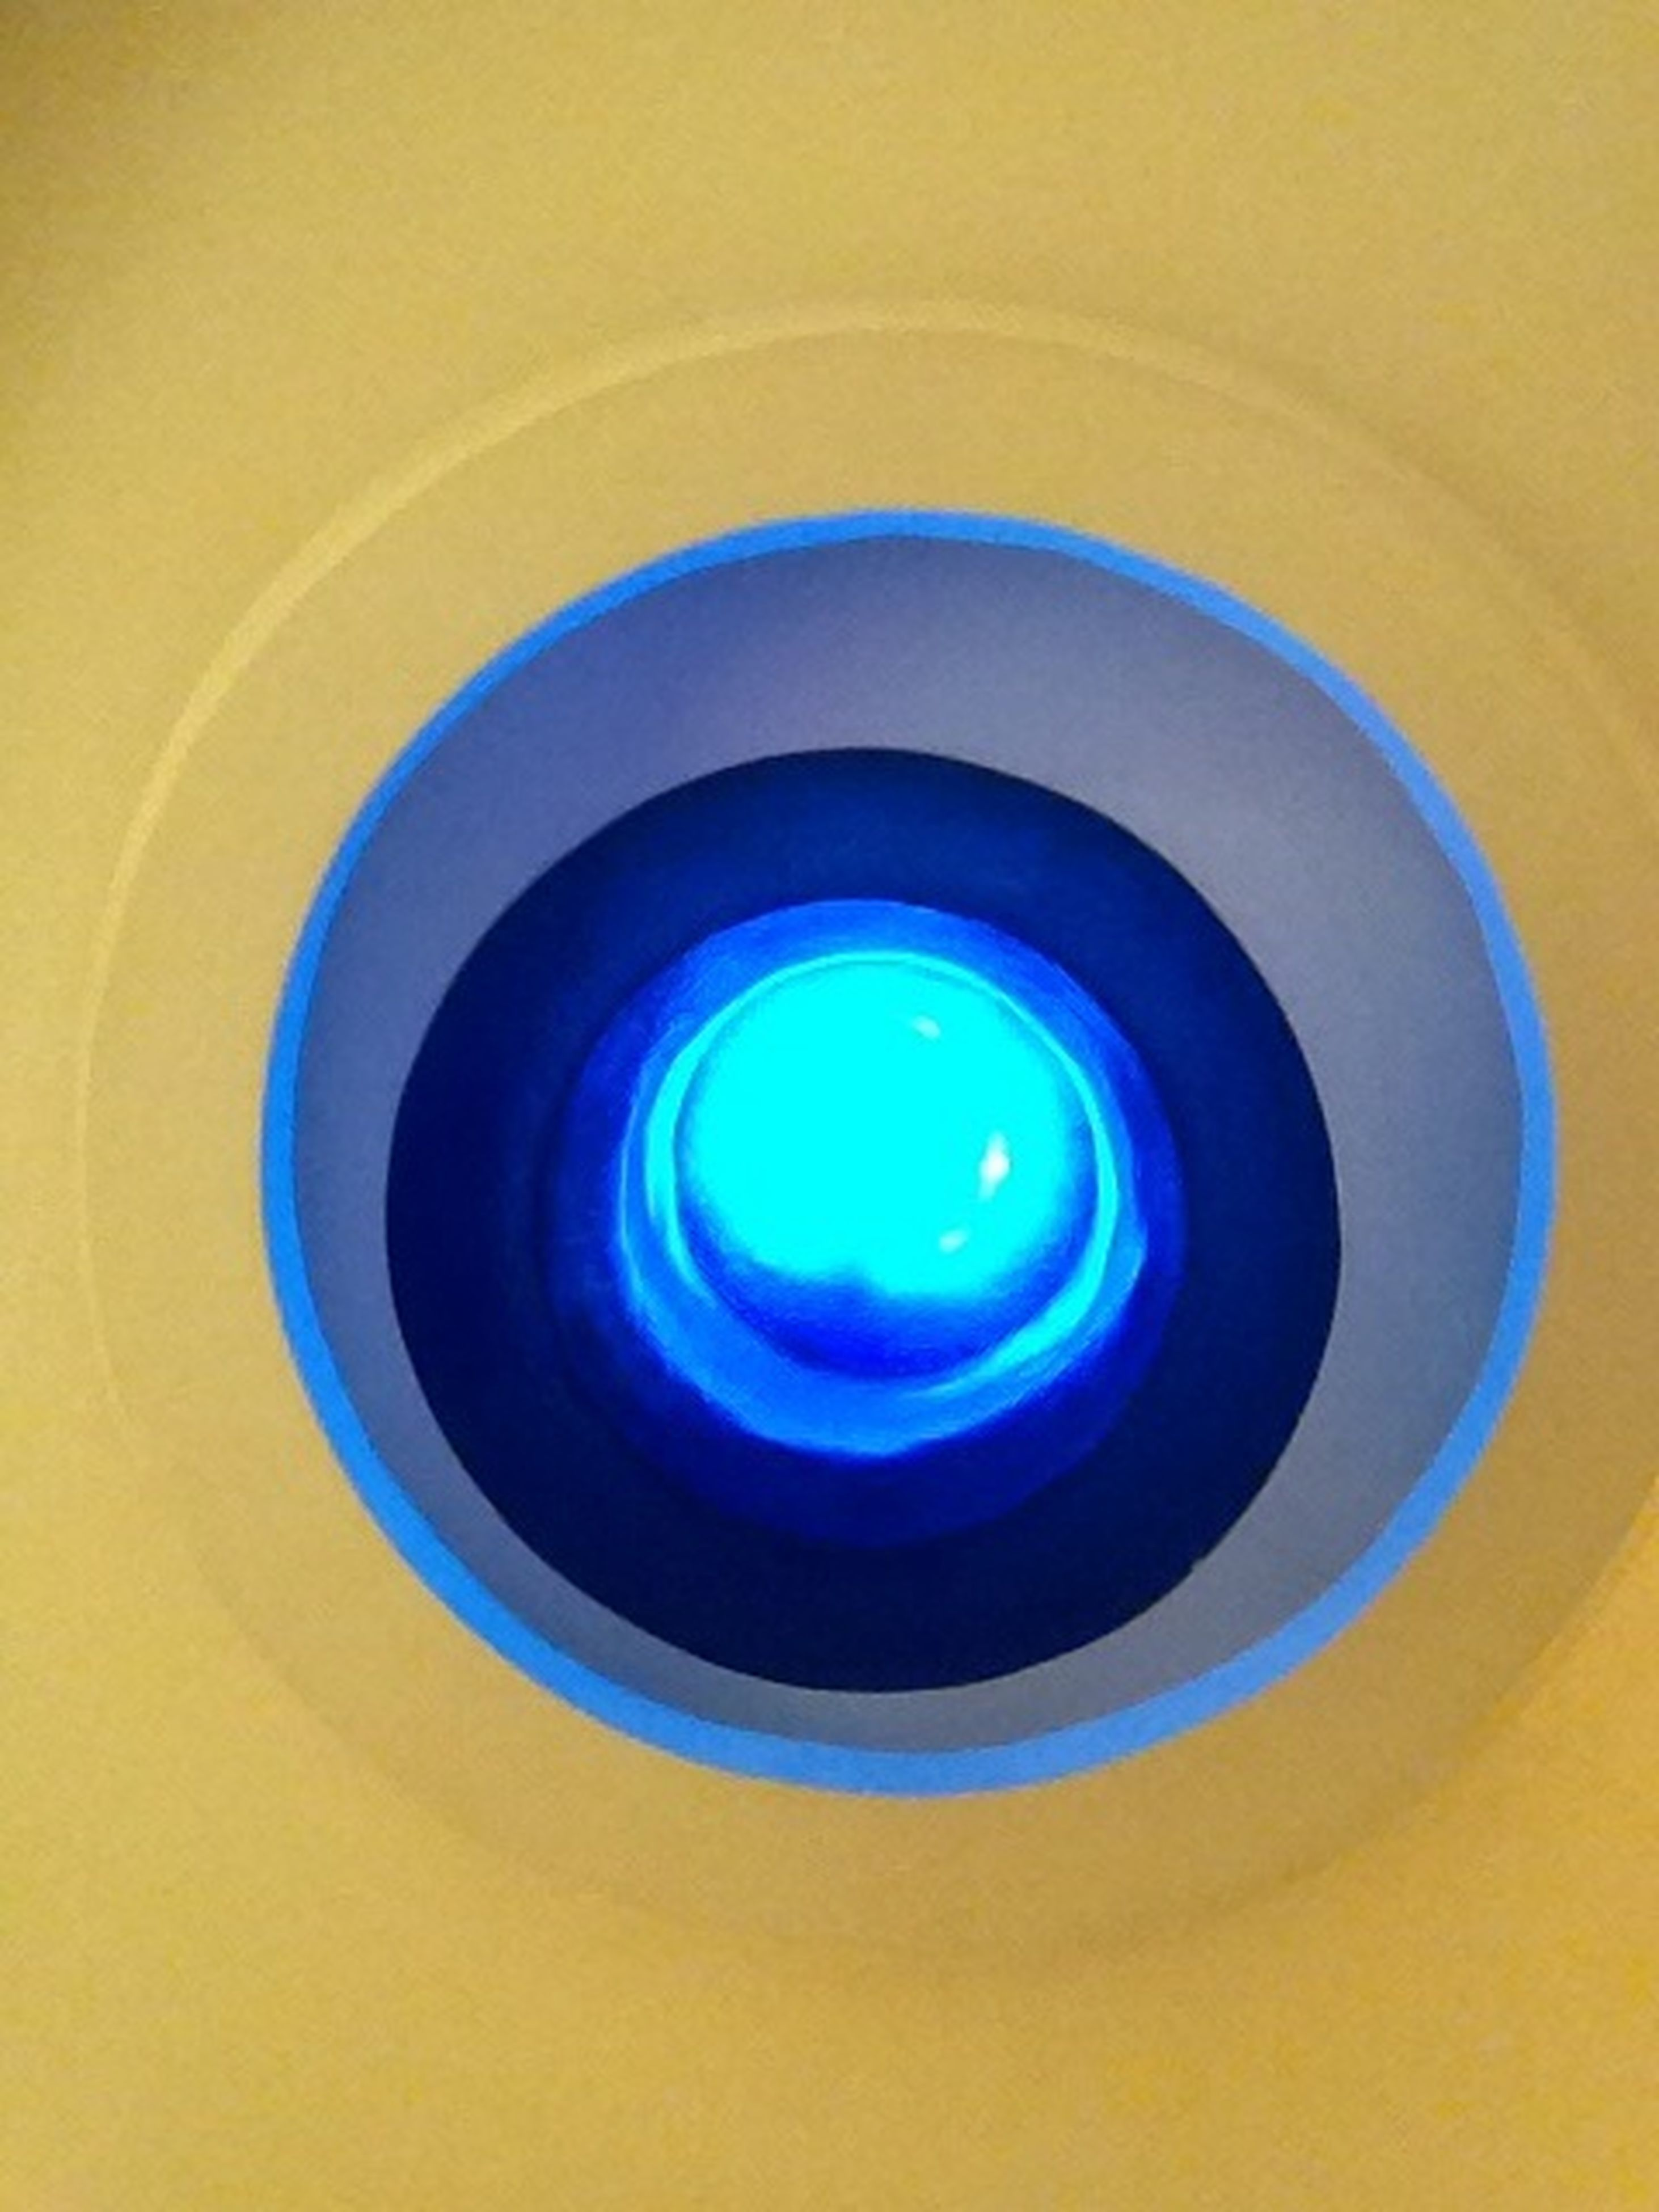 circle, blue, indoors, geometric shape, multi colored, pattern, backgrounds, illuminated, abstract, close-up, low angle view, full frame, no people, reflection, shape, modern, yellow, built structure, architecture, design